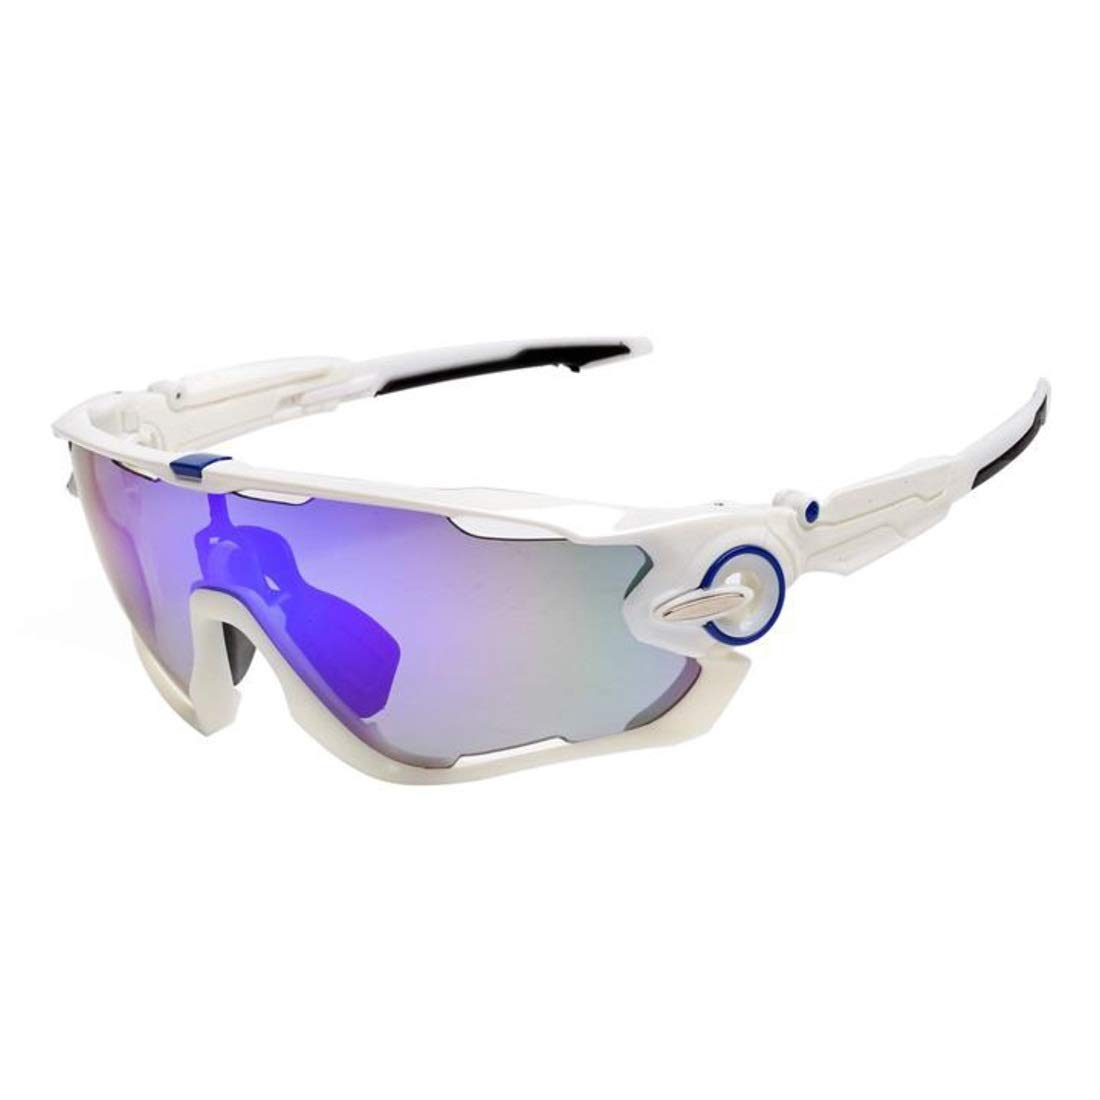 BAOYIT Men and Women Goggles Polarized Sunglasses Outdoor Riding Running Climbing Glasses for Women Men (Color : F) by BAOYIT